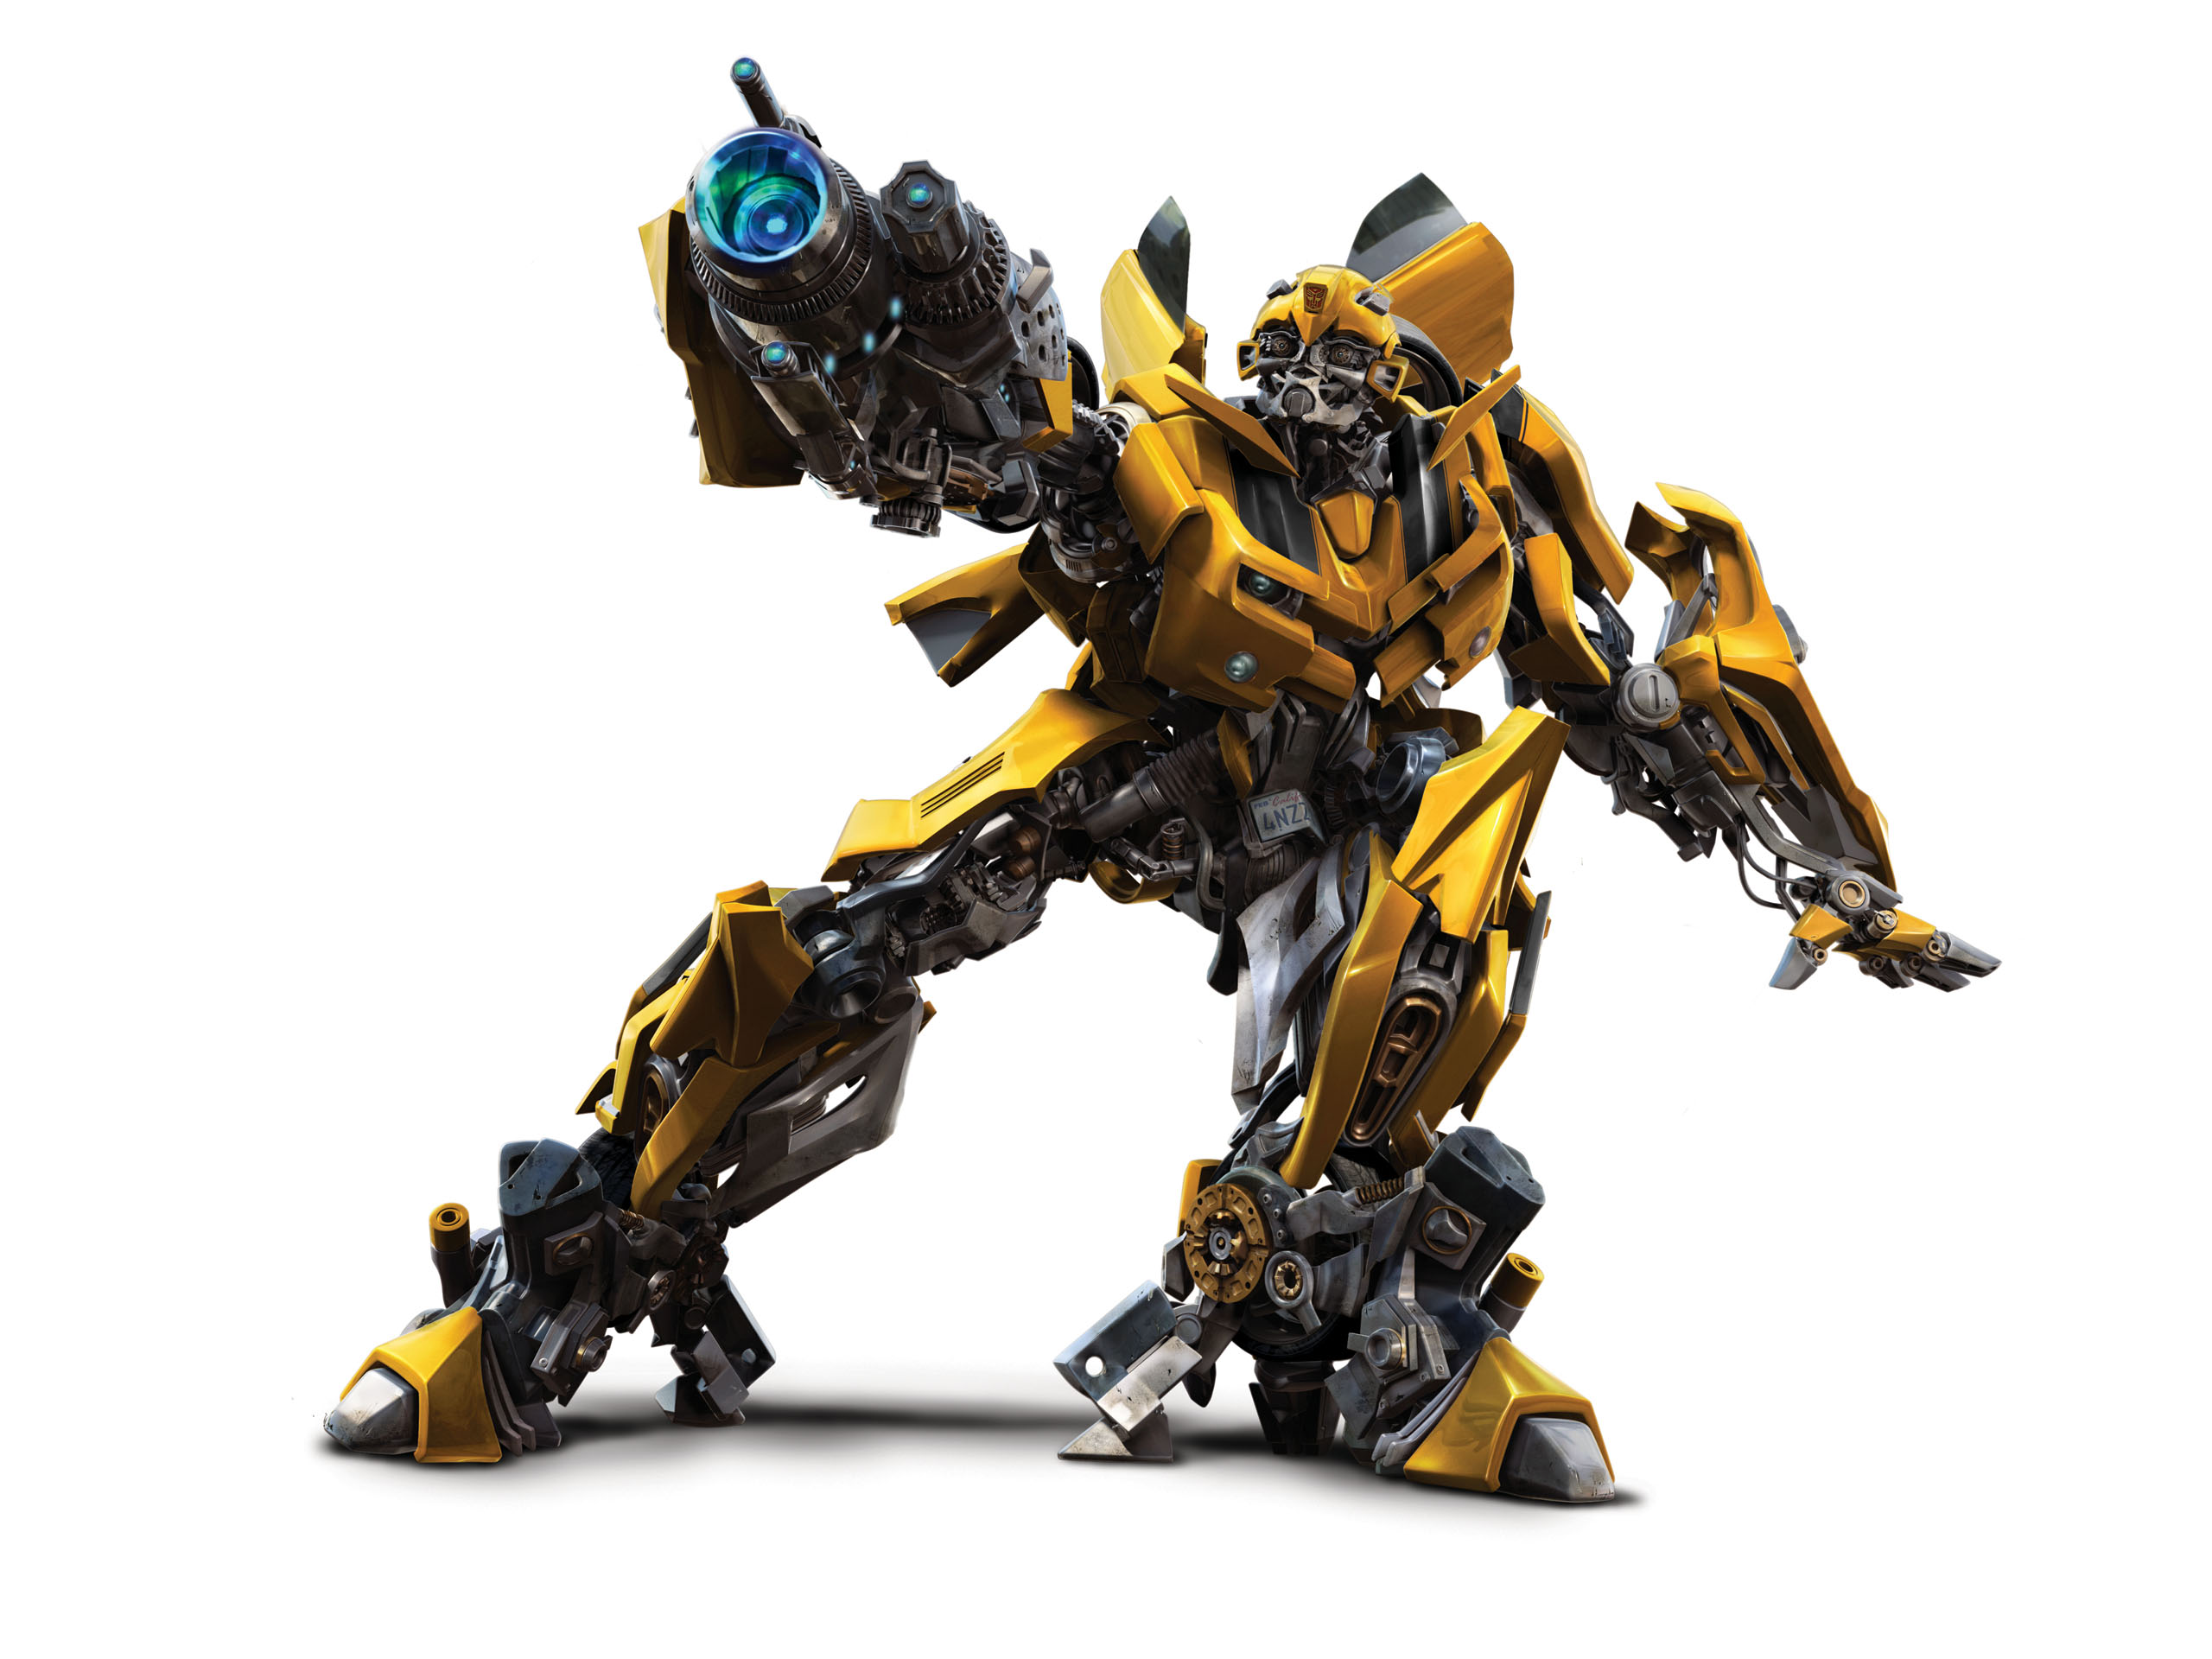 Transformers Bumble Bee HD Wallpaper Animation Wallpapers 2560x1920